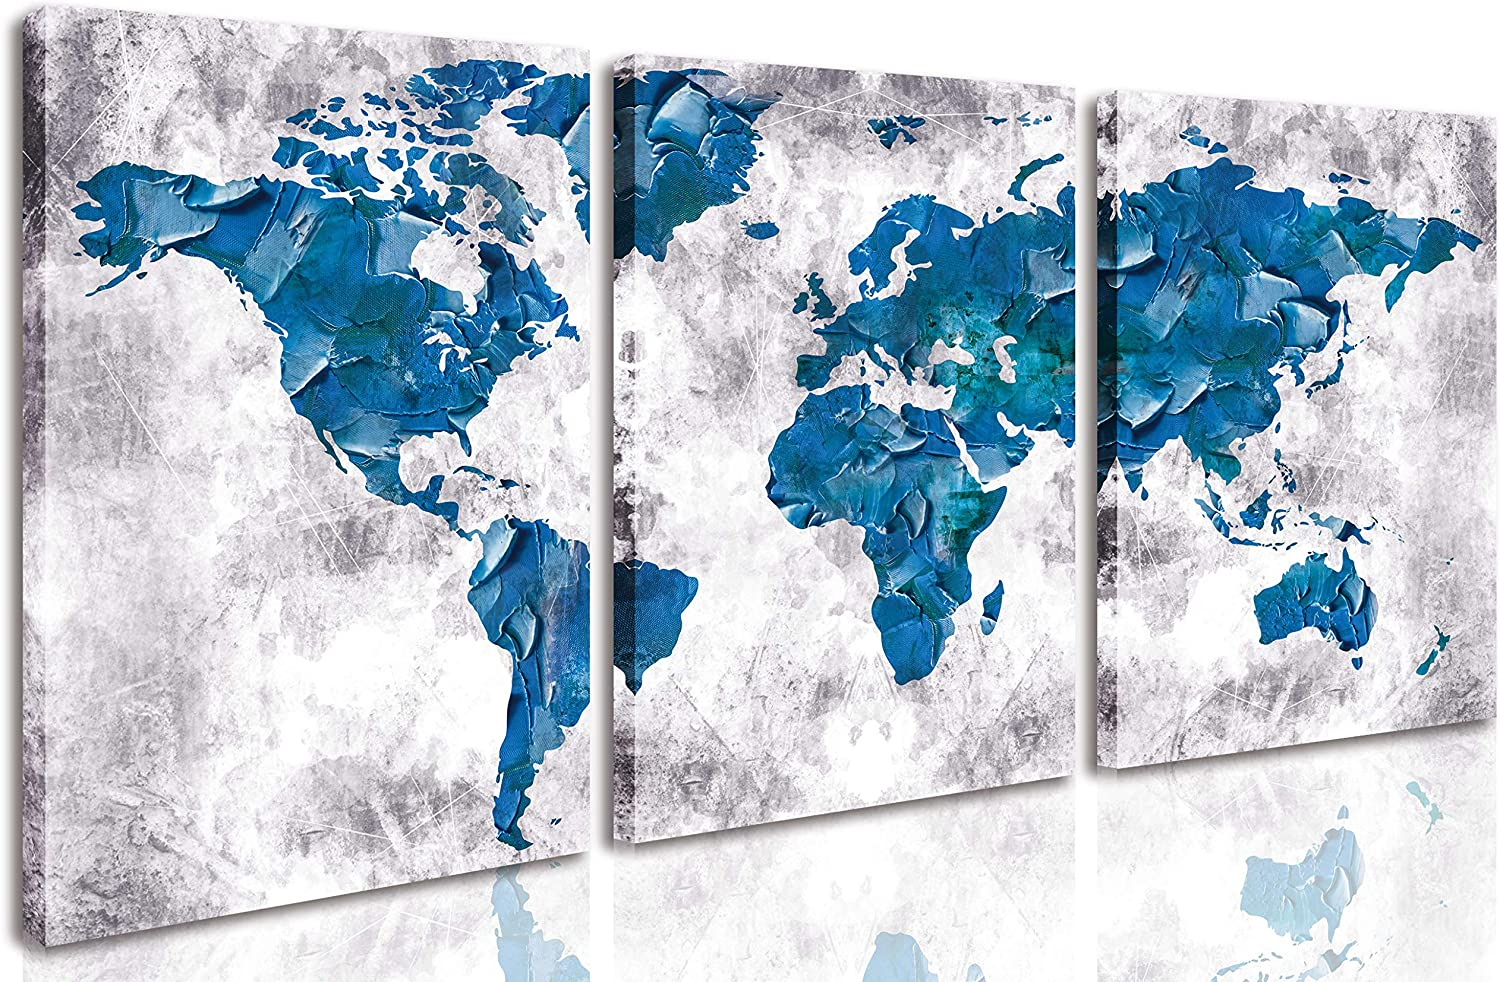 CGXART Abstract World Map Wall-Art - Large Canvas Art Wall Decor - Wall Decorations for Living Room Modern Farmhouse Home Office Wall Decor Easy to Hang Size 12x16 Inches x3 Pieces